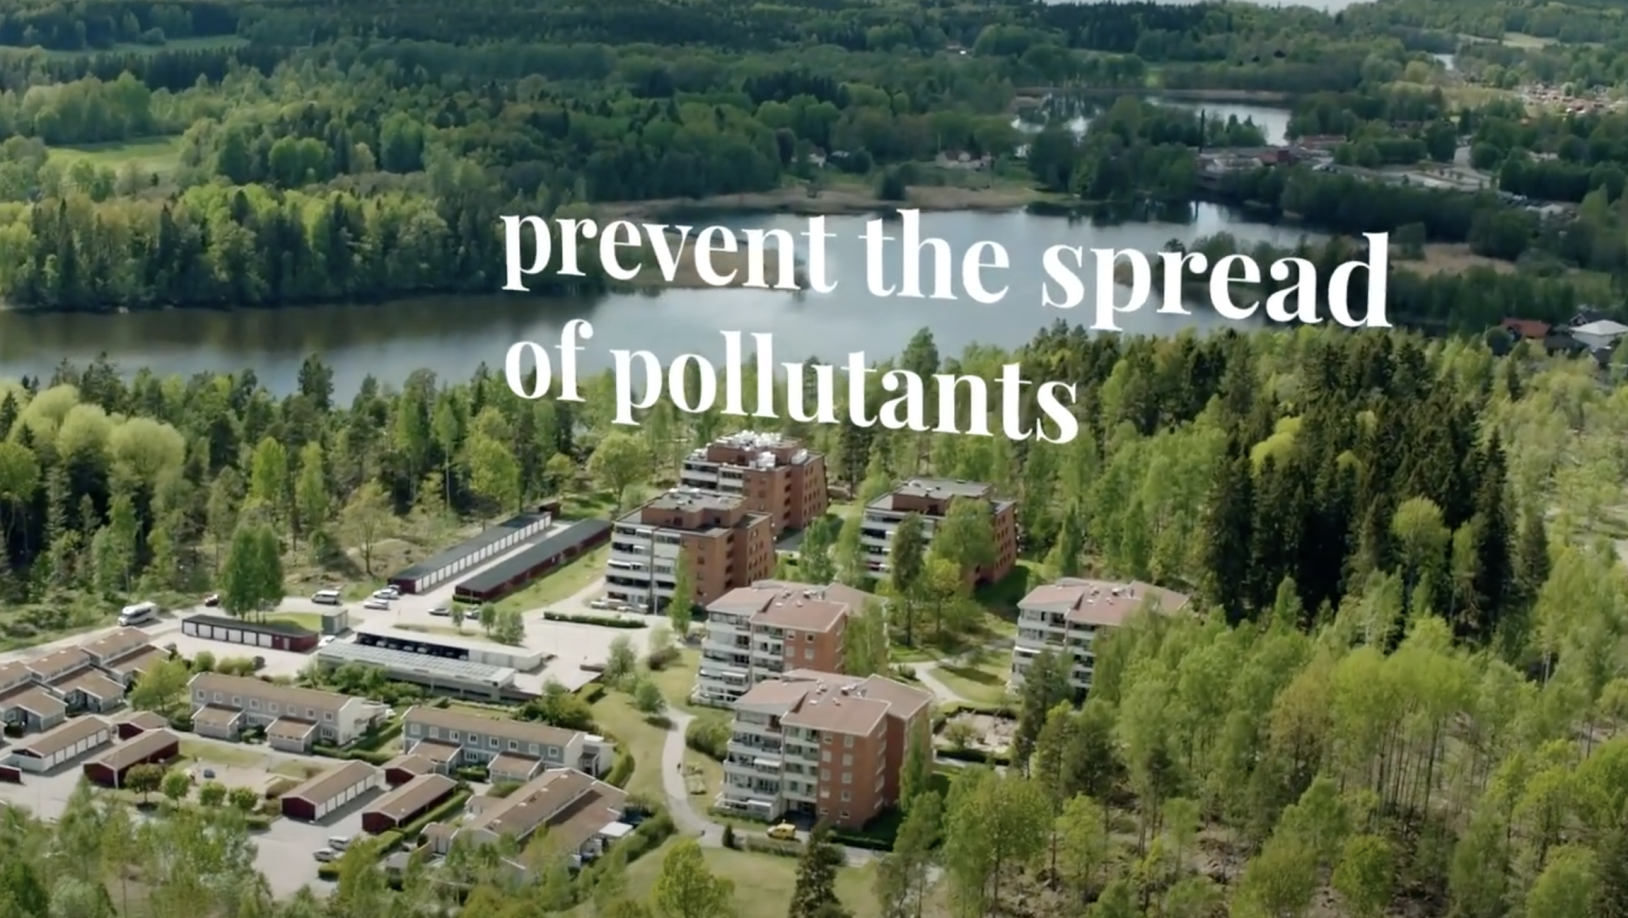 Sustainability in Europe- Water Conservation in Sweden, emphasizing prevention of pollution spread